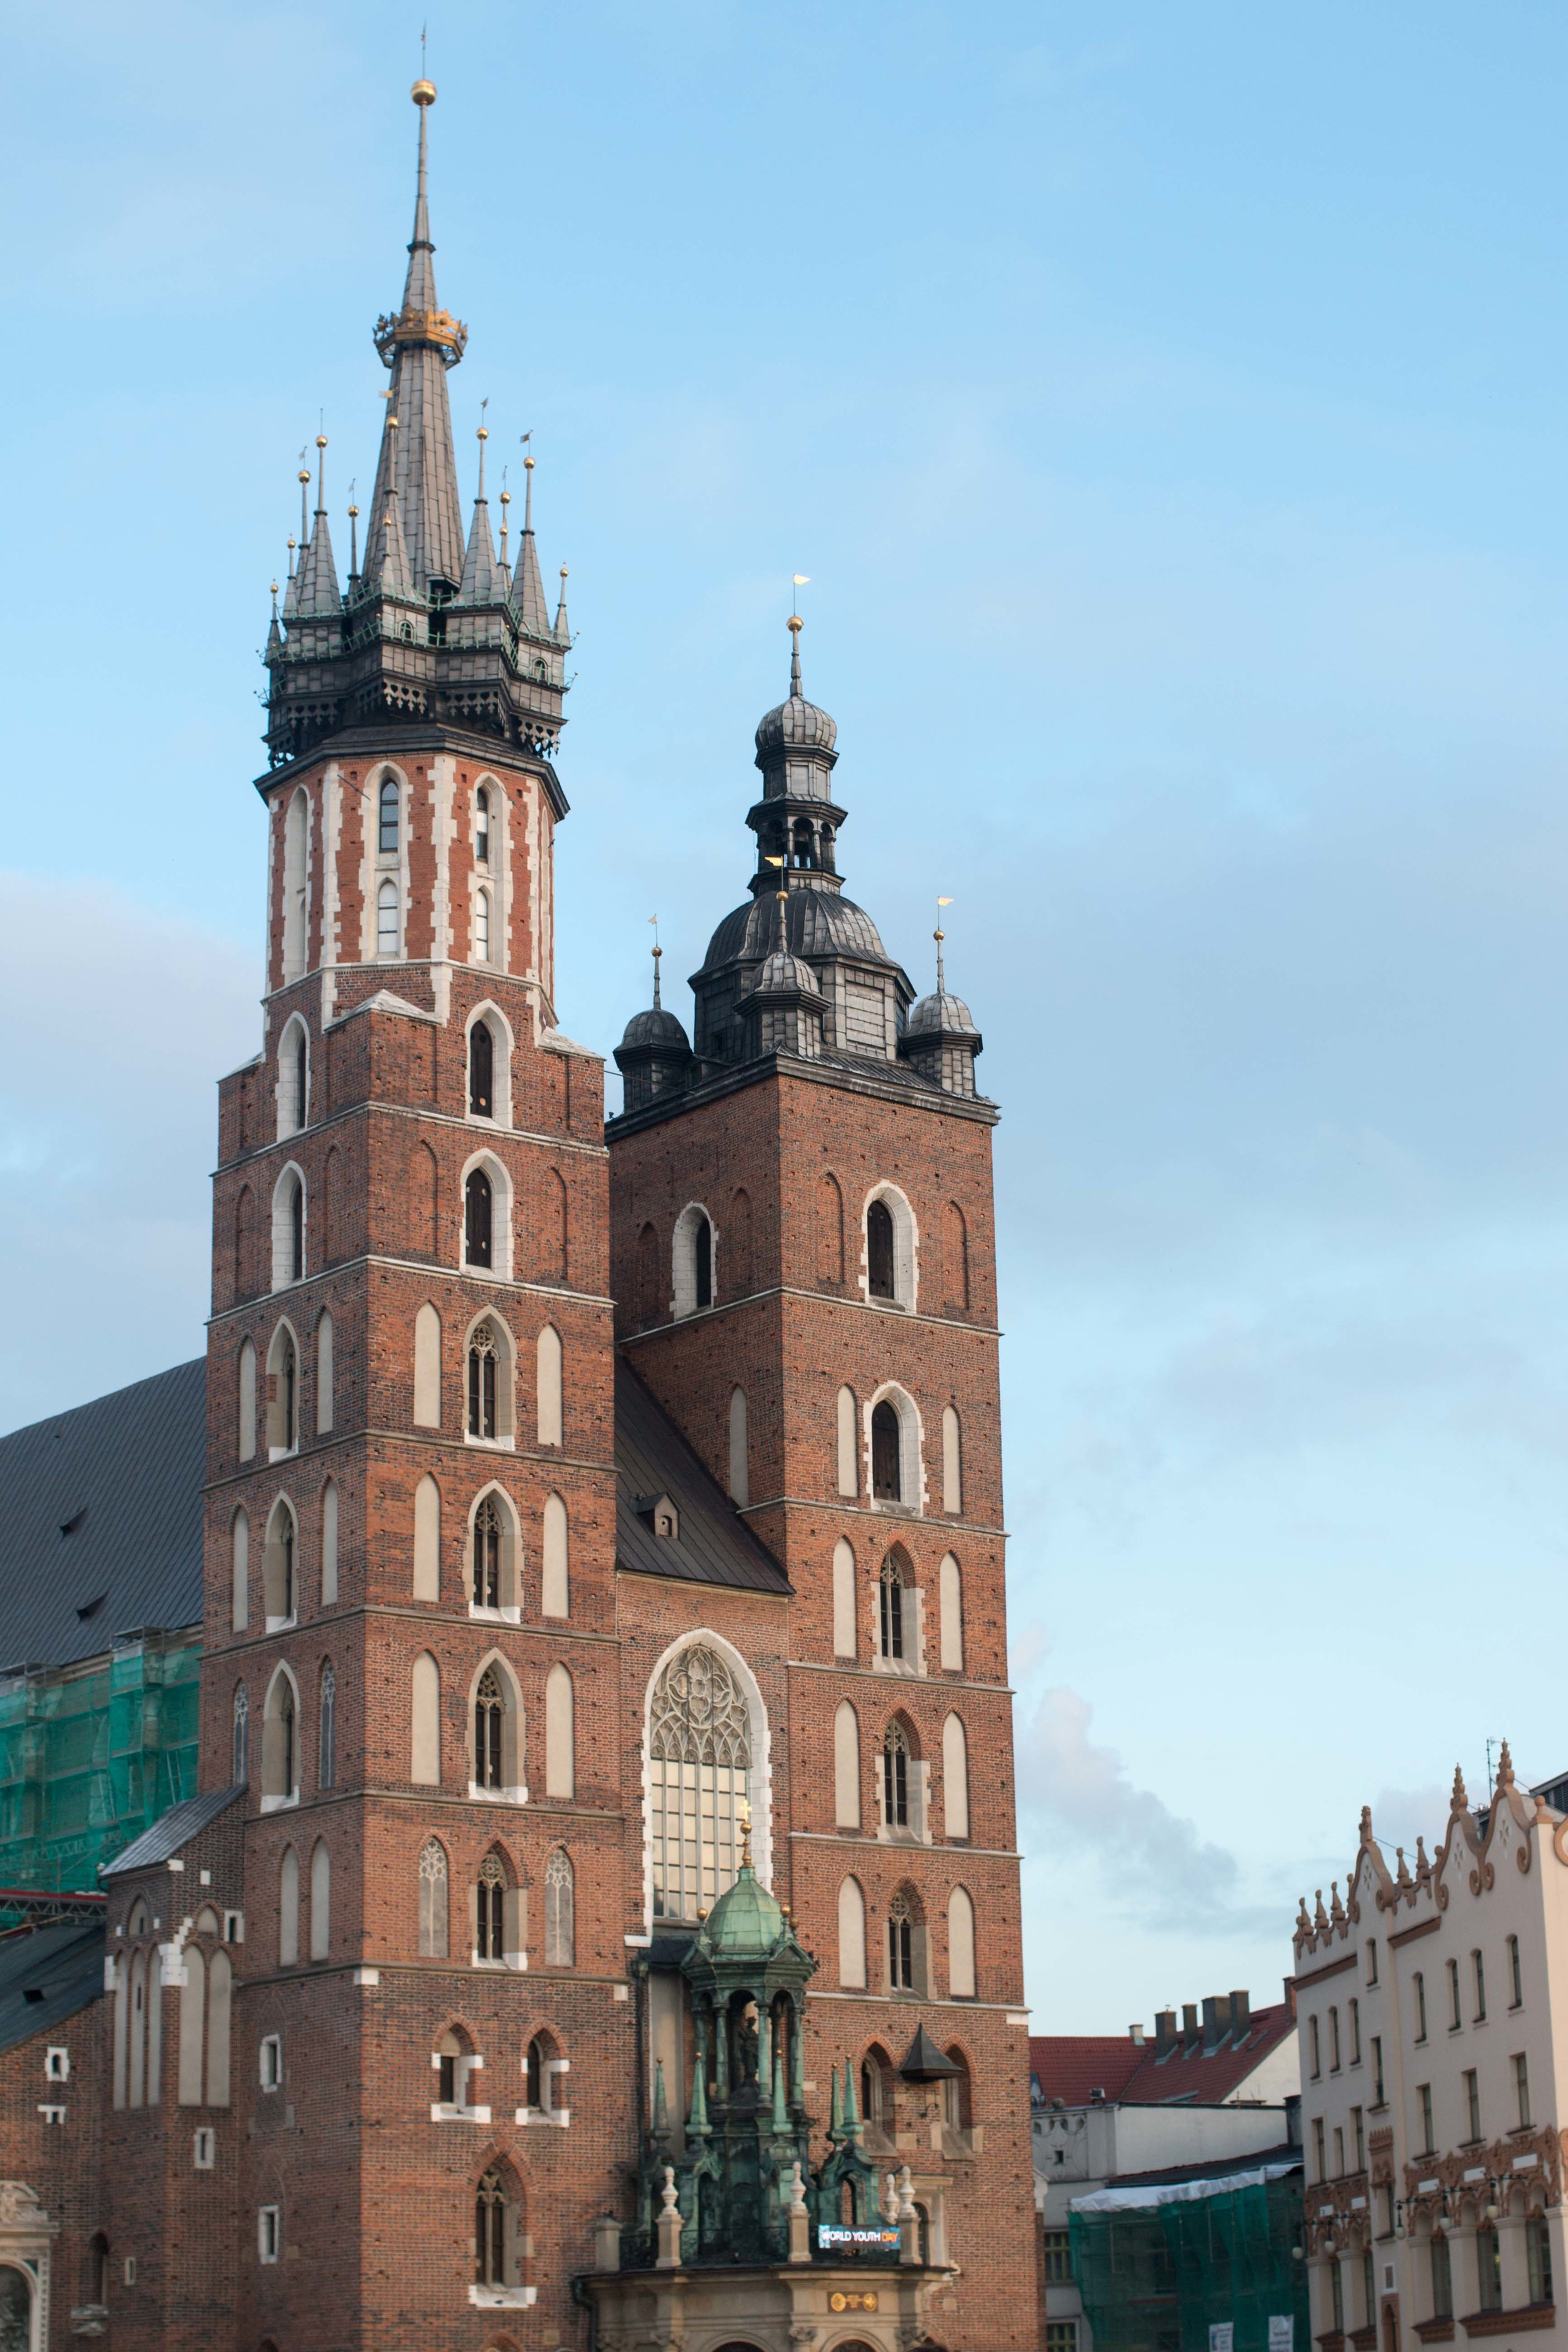 St. Mary's basilica - a trumpeter plays from the taller tower, each hour, throughout the day and night